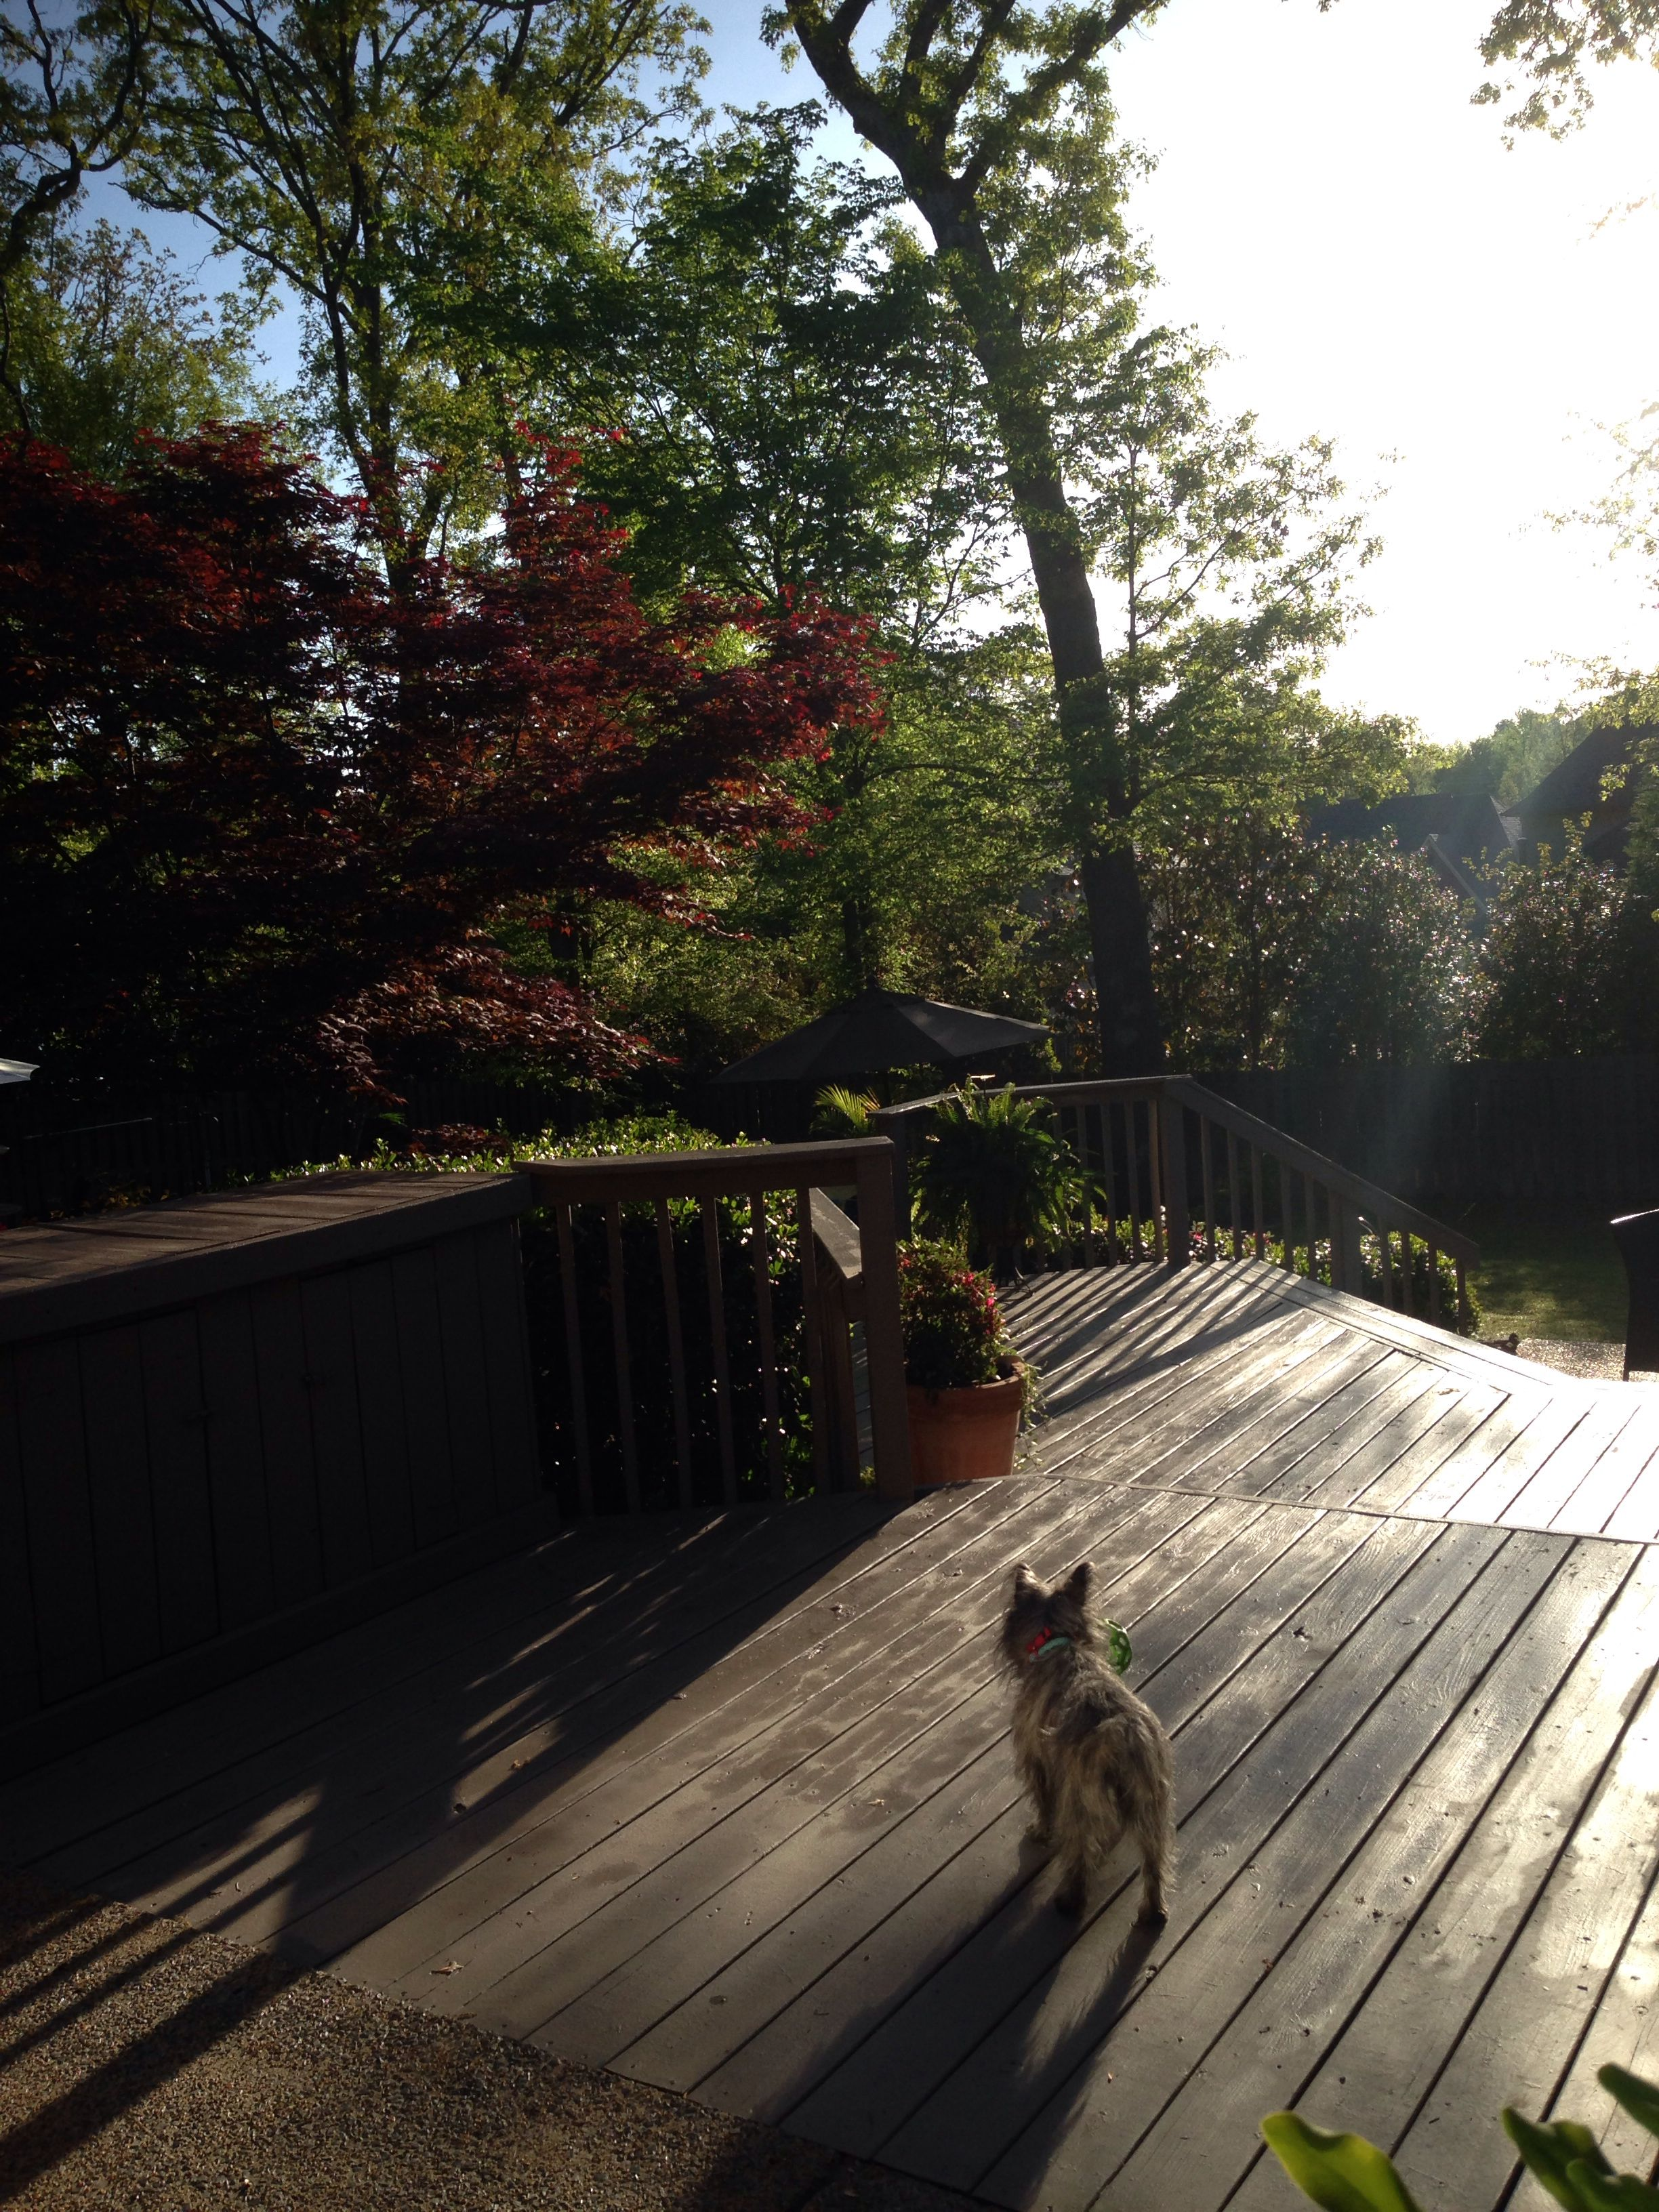 Behr Restore Deck Paint Really Does Fill In The Cracks And